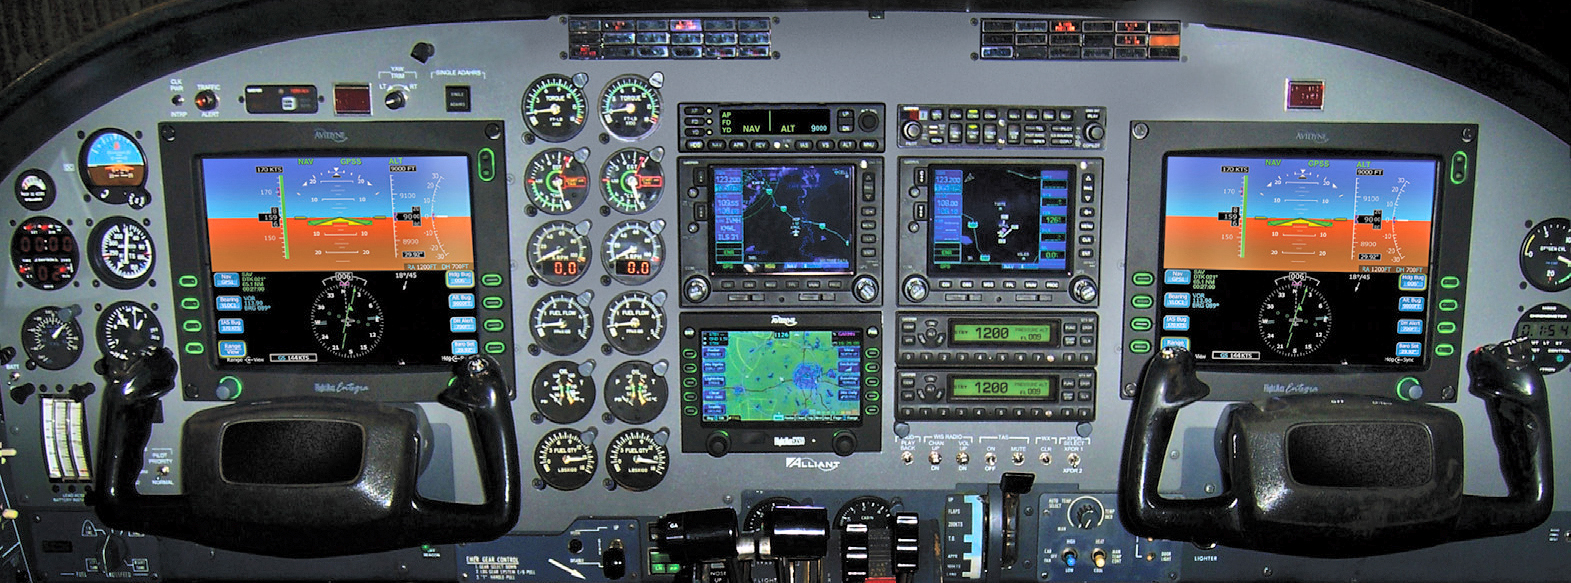 As shown here, the Alliant Retrofit for the Cessna 441 Conquest II includes Avidyne's Envision Integrated Flight Deck System and the S-TEC 2100 Digital Autopilot. Alliant is also available with an RVSM option for operators who fly the aircraft above 29,000 feet.